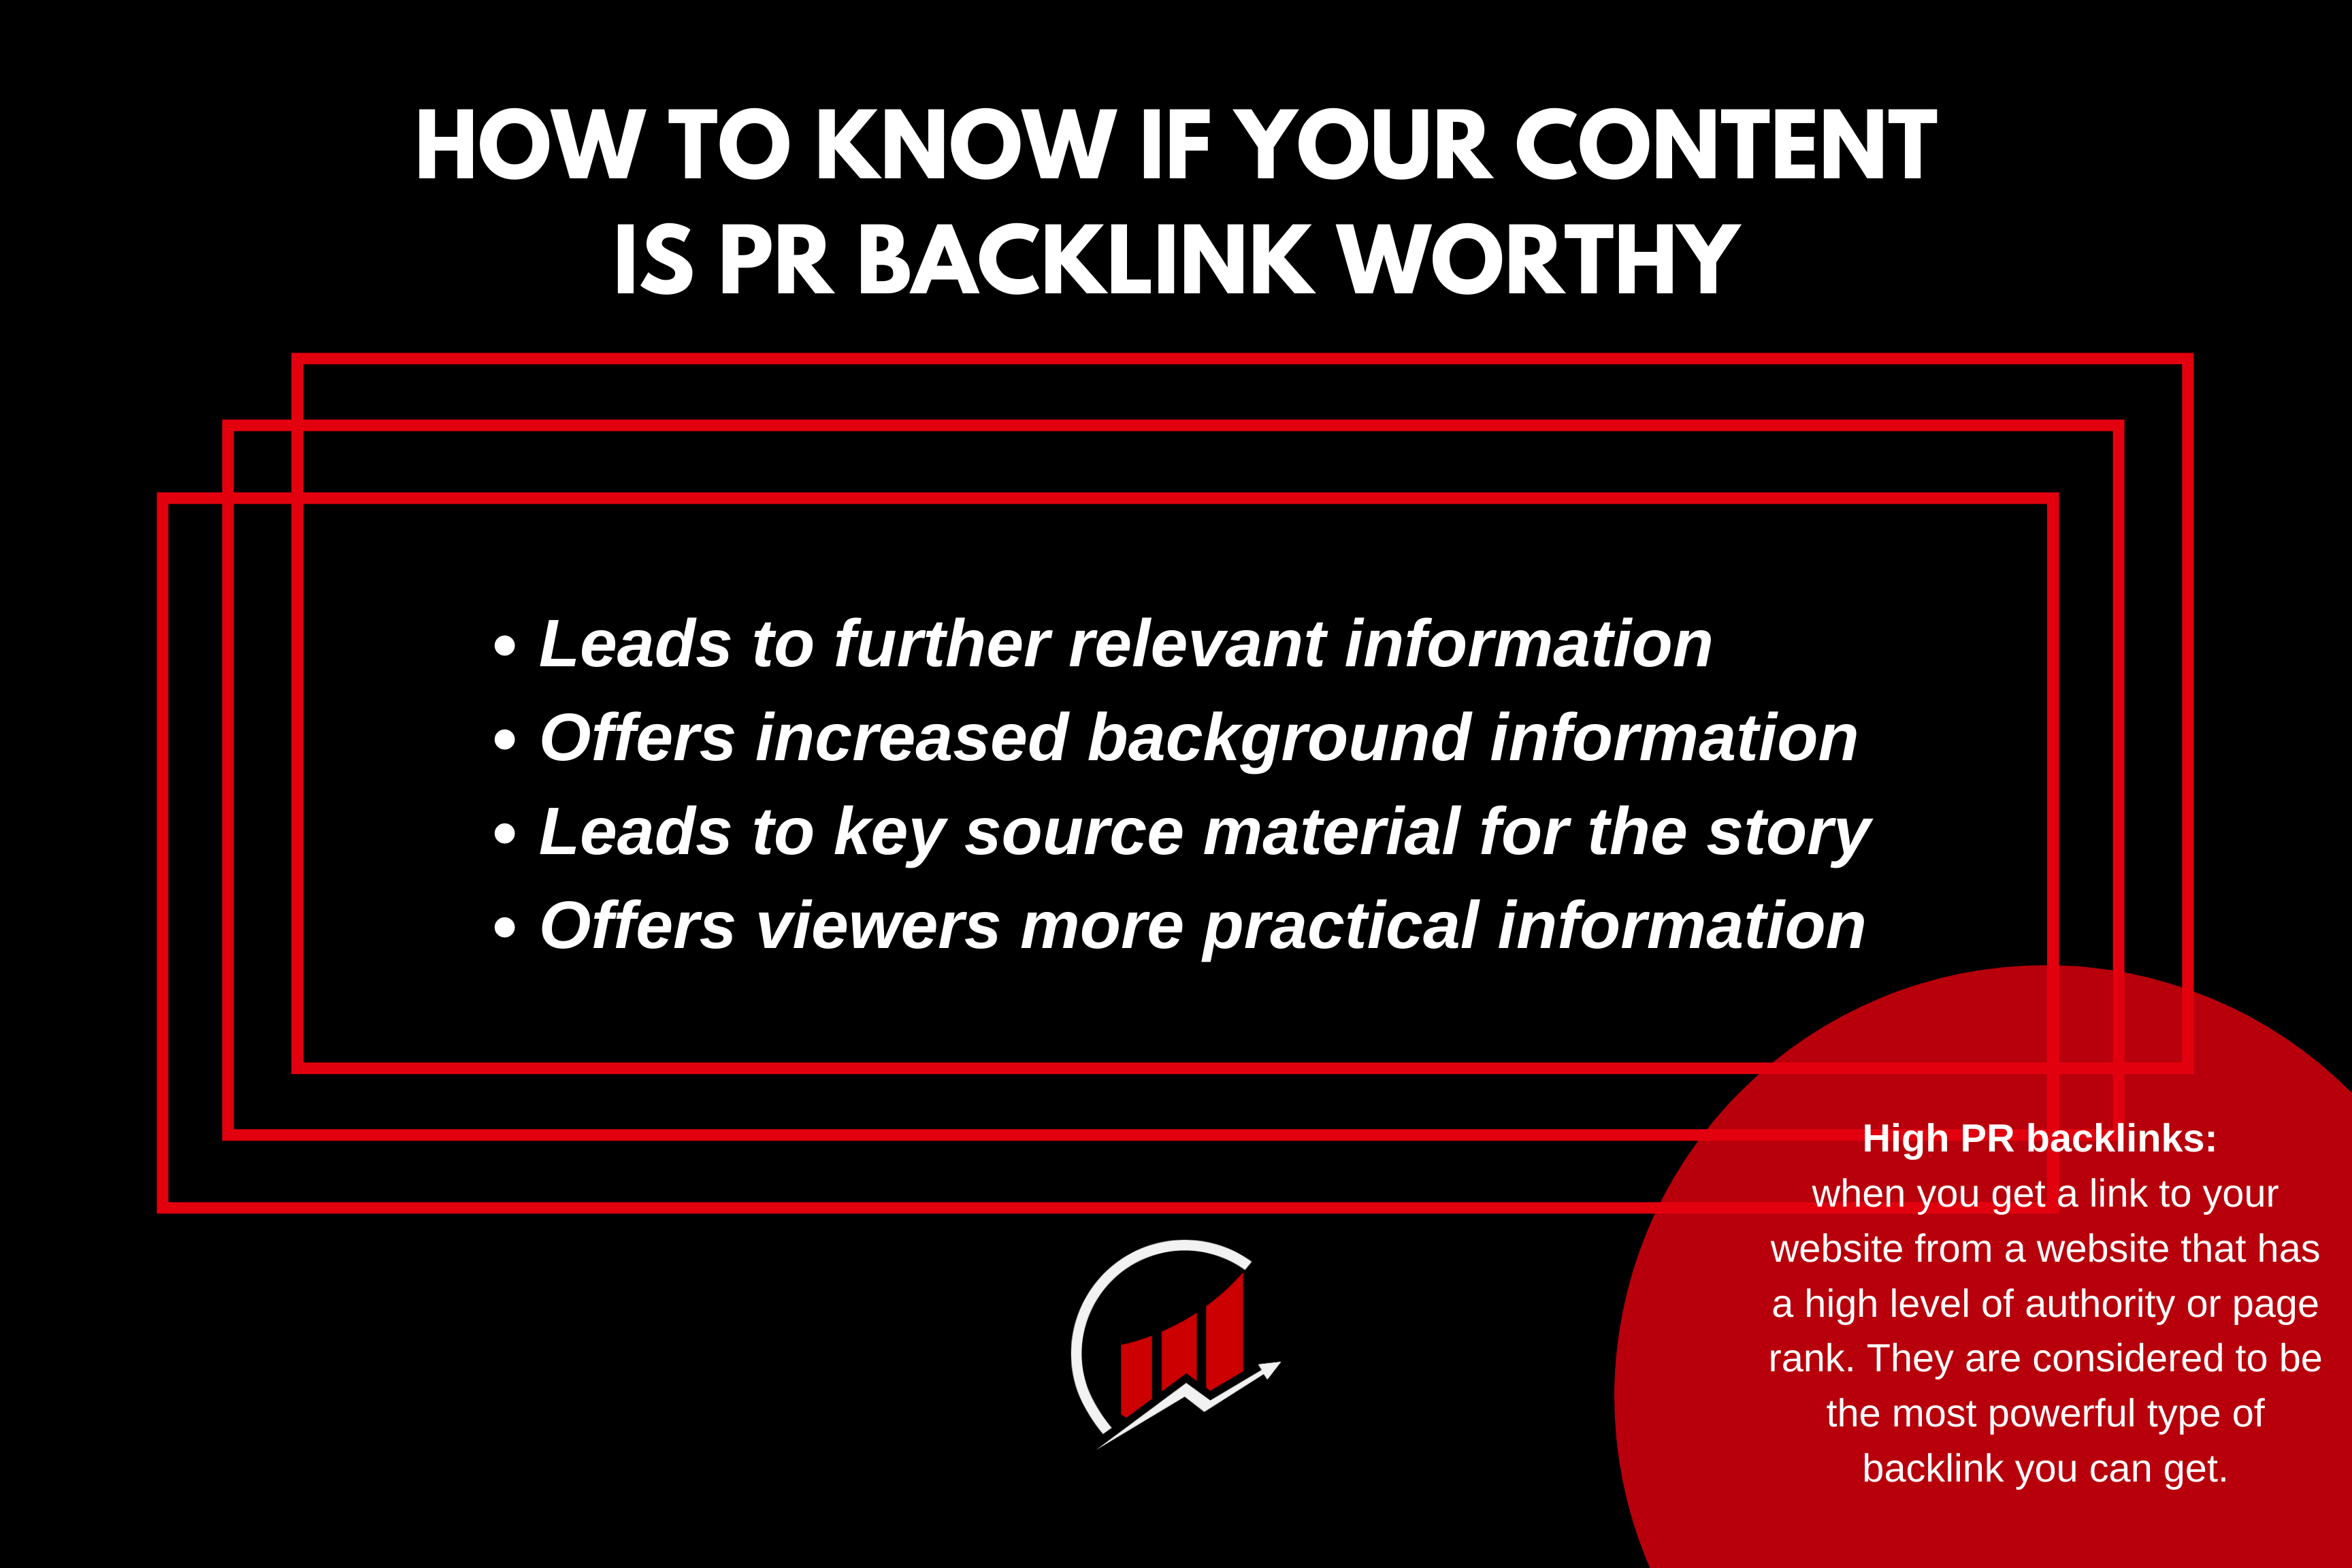 Is your content pr backlink worthy